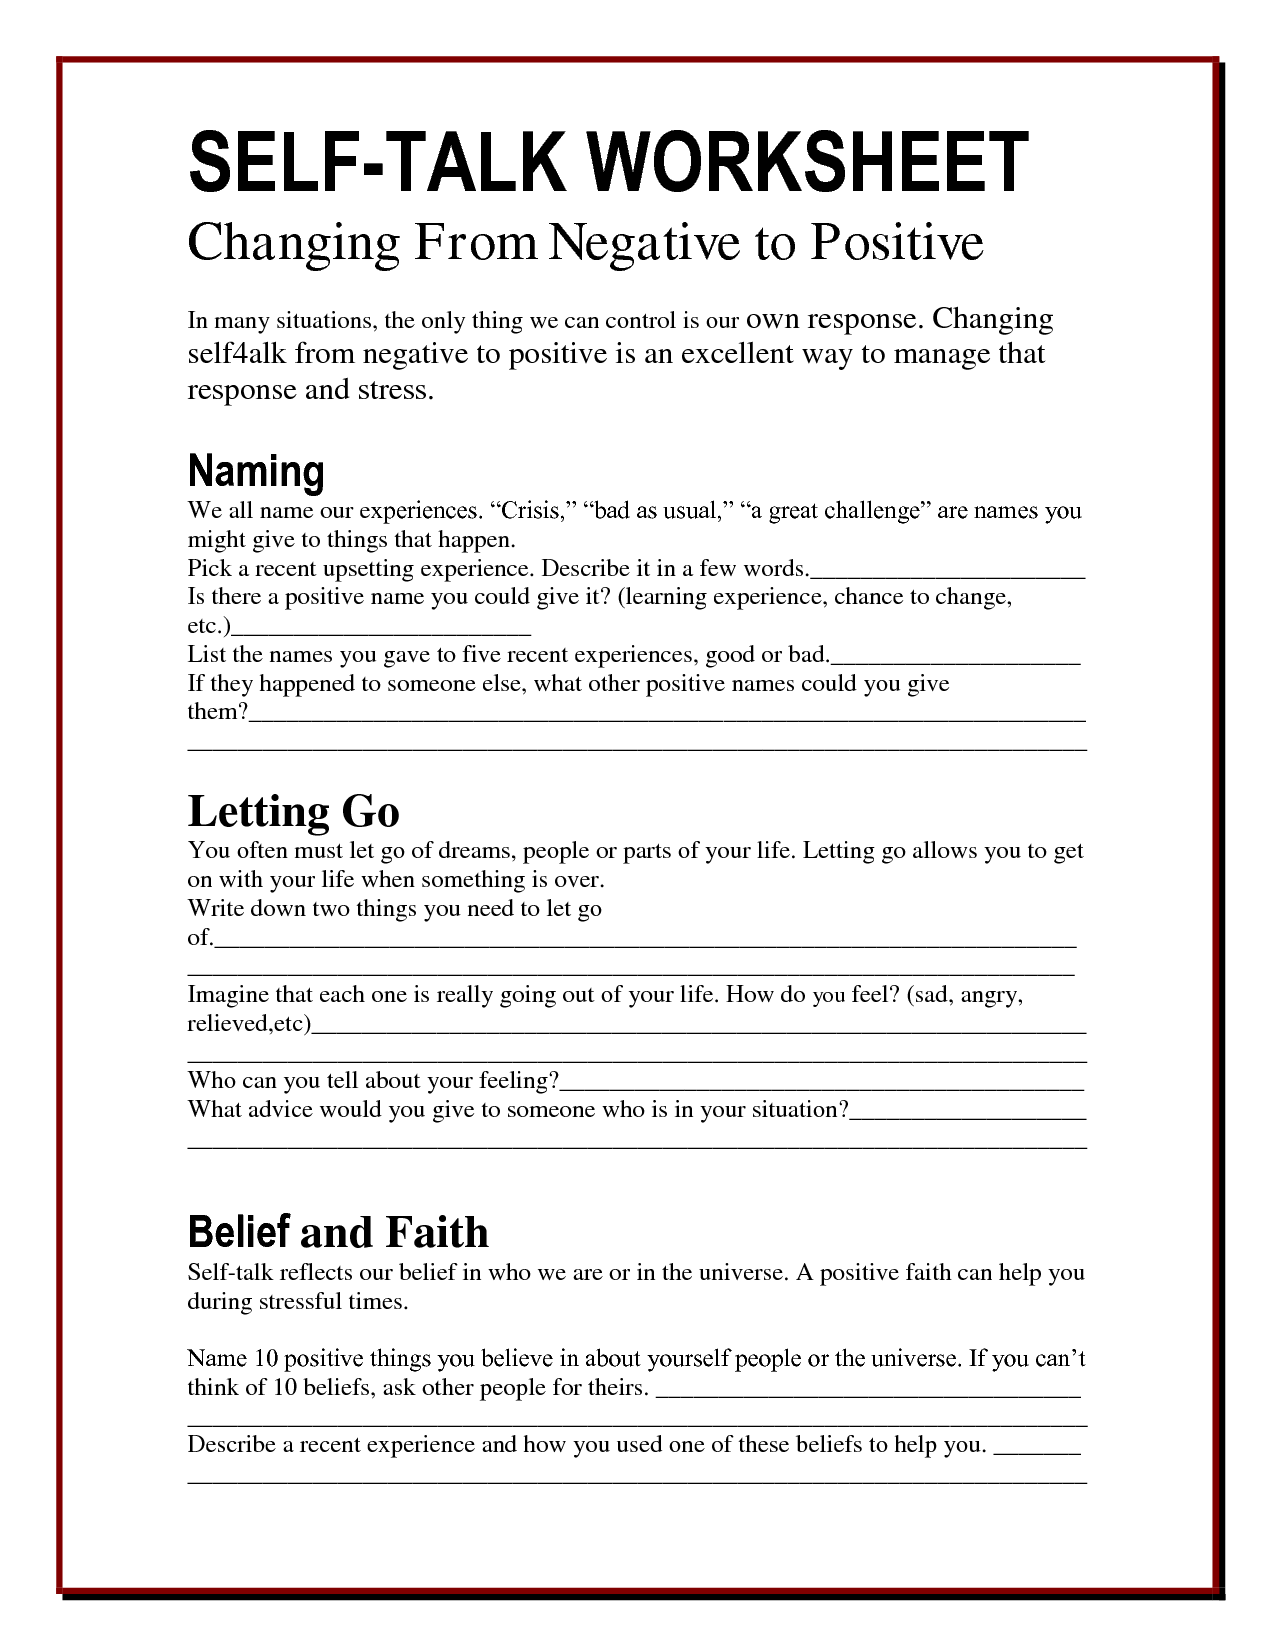 Worksheets Building Self Esteem Worksheets for more tips to better manage the anxiety in your life visit findingstressrelief com affirmations pinterest worksheets goog